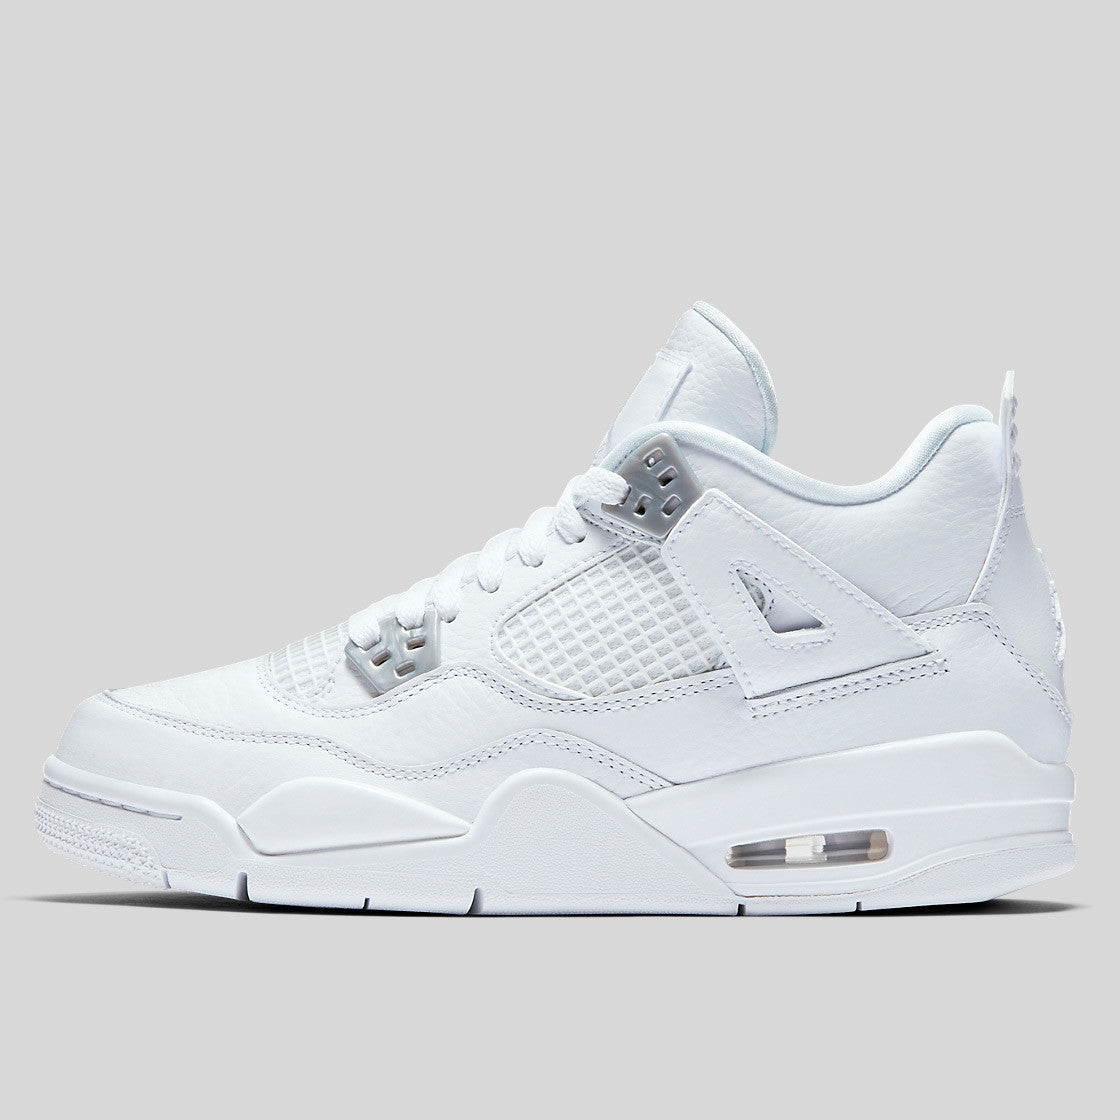 34c067eff4ba91 Nike Air Jordan 4 Retro BG (GS) Pure Money (408452-100)